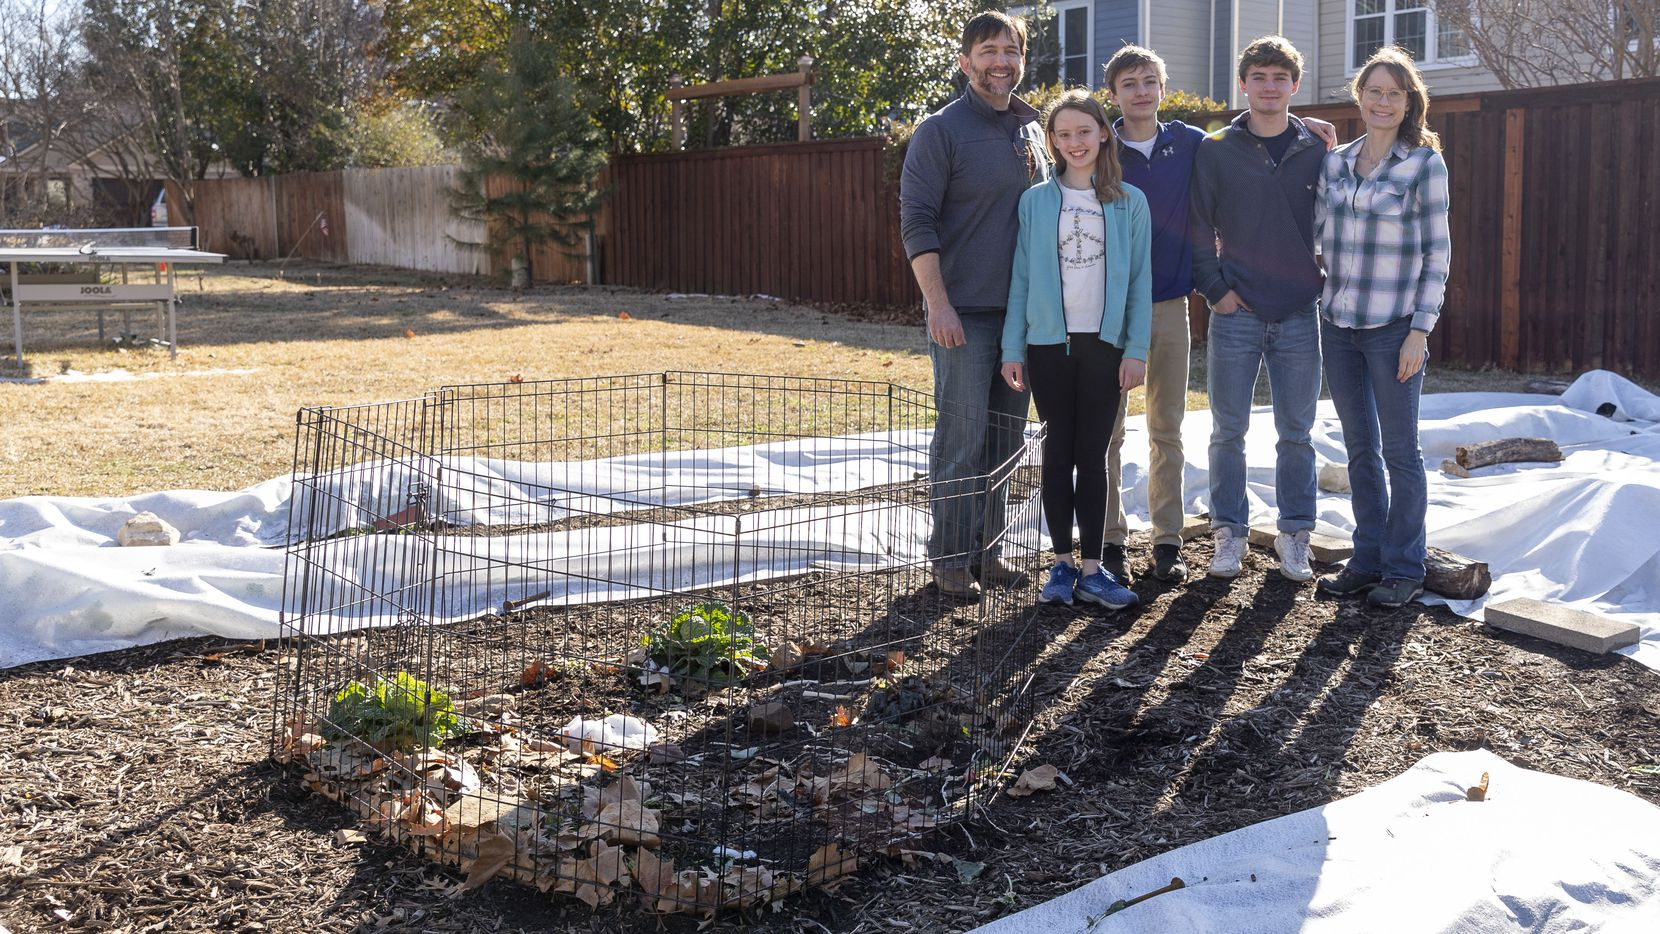 """The neighbors in the Marshes' Grapevine neighborhood have been supportive of the family's garden. """"The neighbors seem to get a kick out of it,"""" says Eric Marsh. """"It's a great conversation piece."""" Pictured are Eric (from left), Casey, Mason, Deric and Betsy Marsh."""